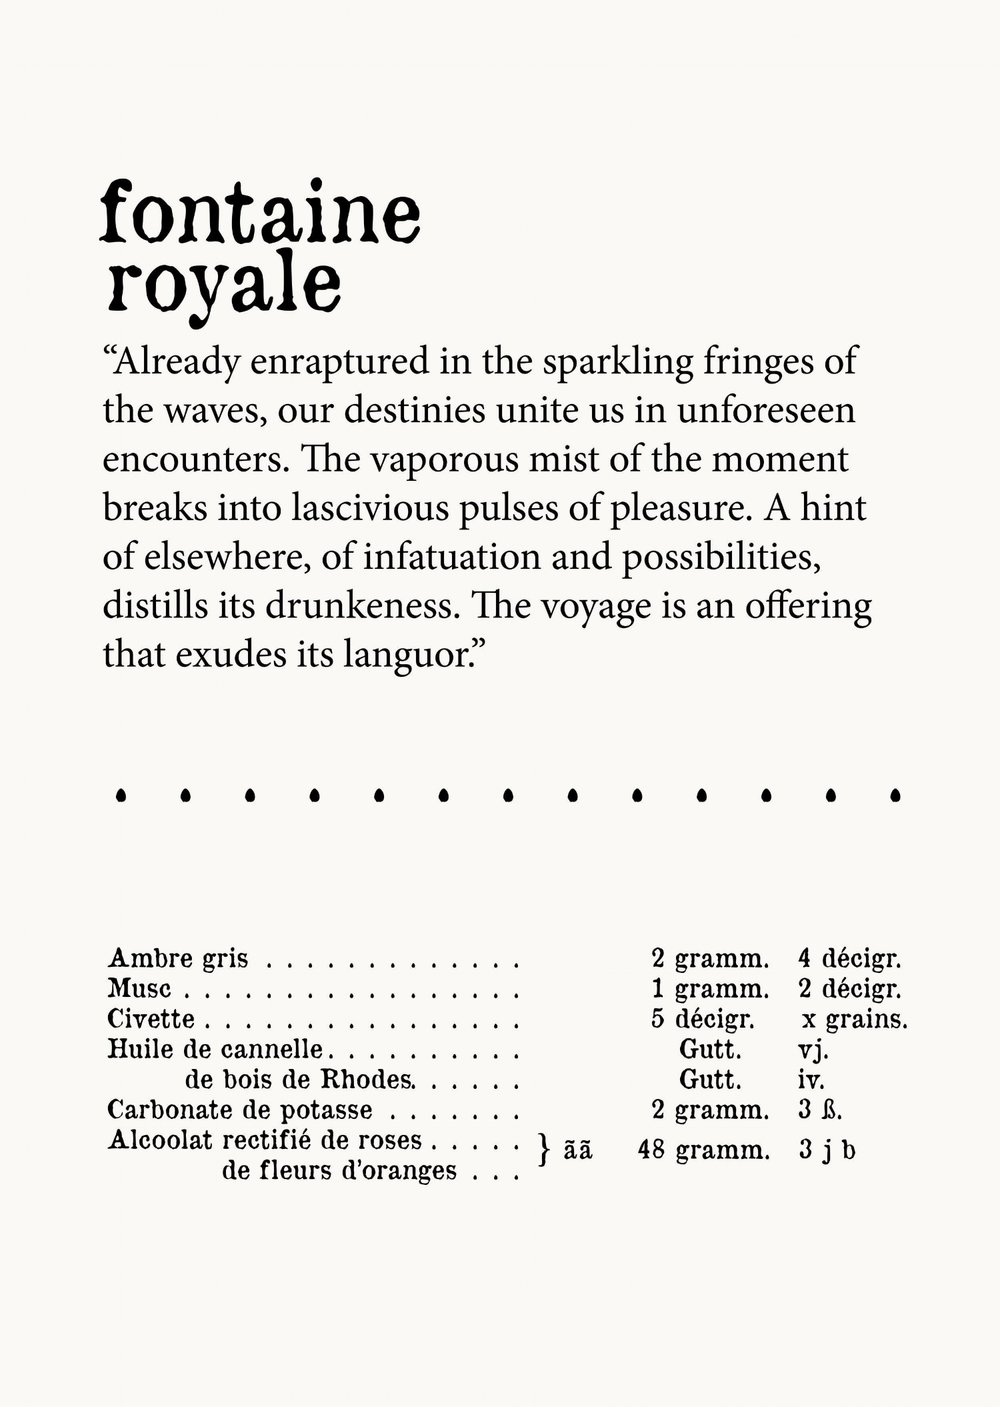 fontaine royale recipe